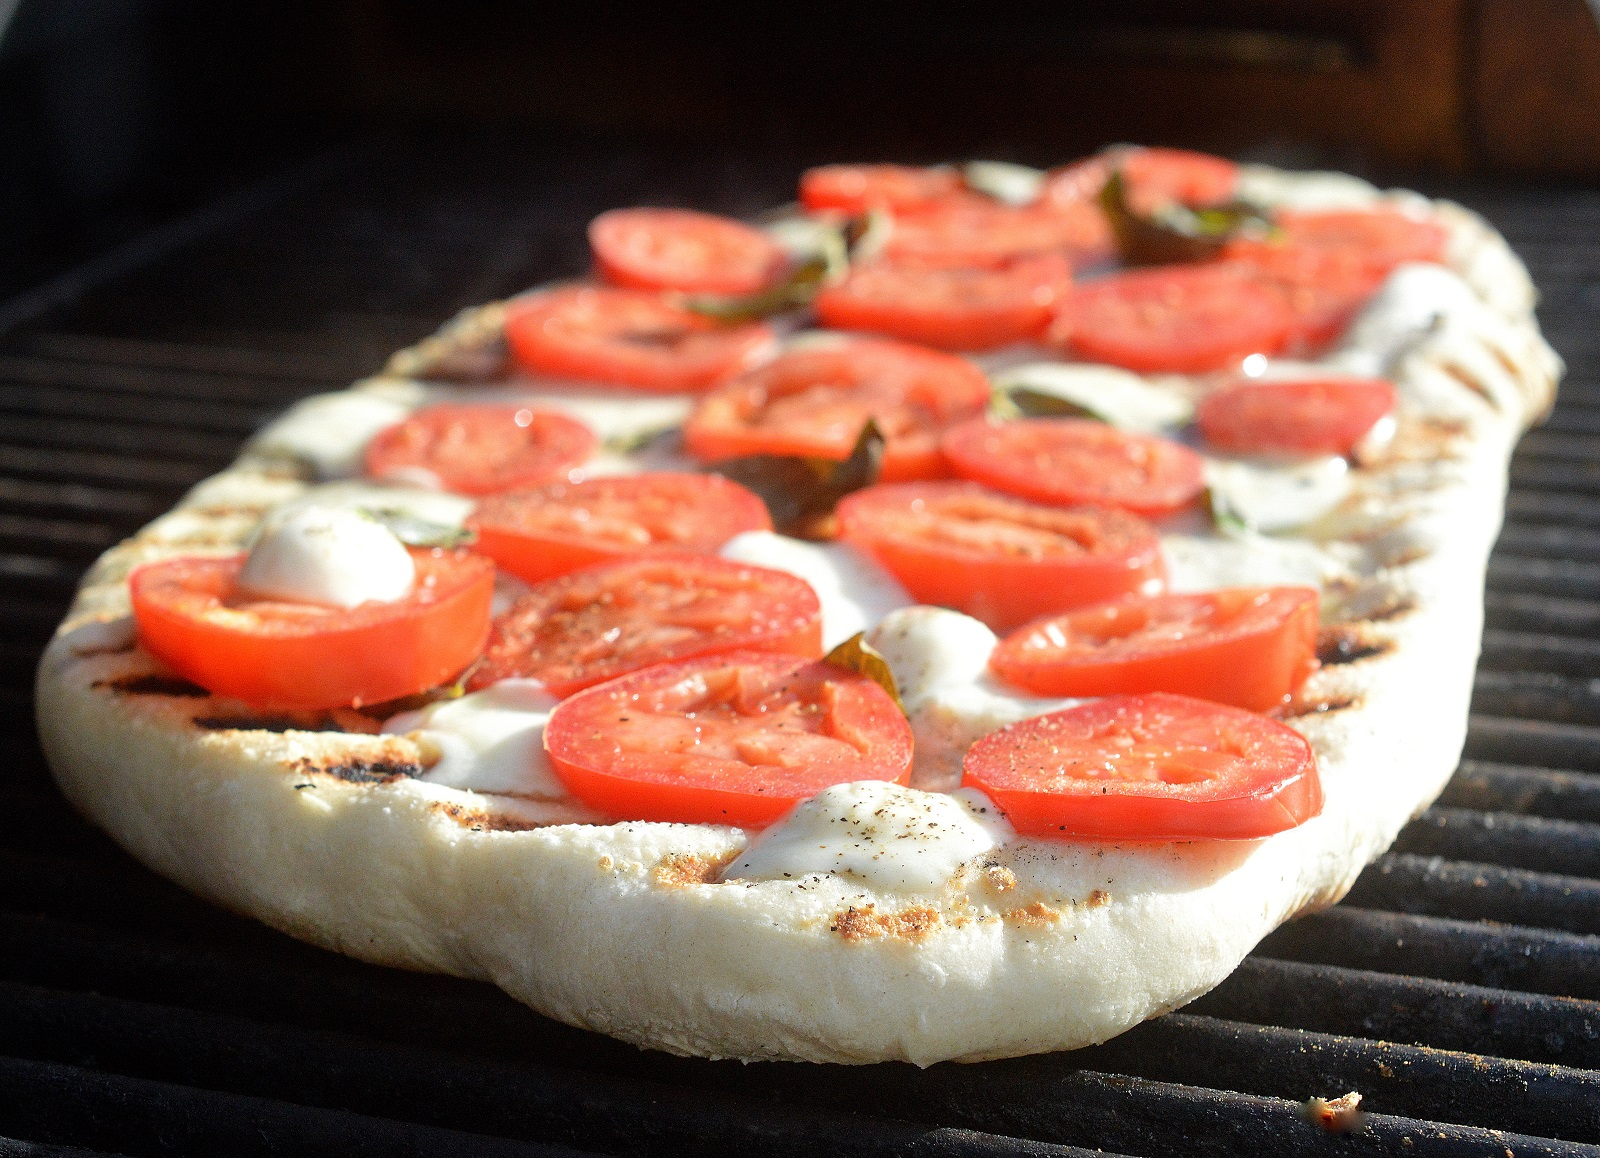 grill pizza at home